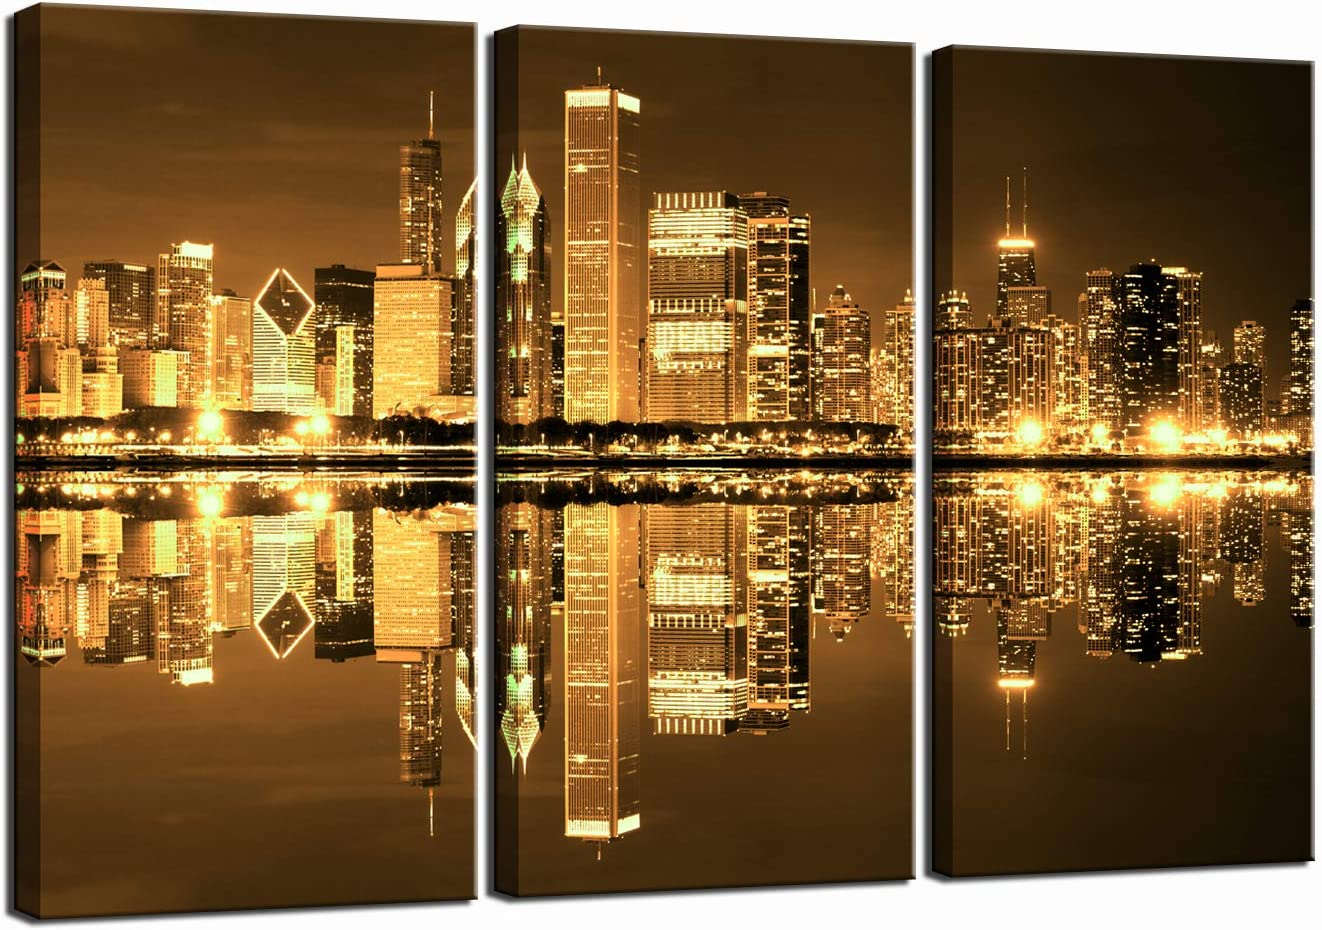 LevvArts - 3 Piece Wall Art Painting Gold Yellow Chicago Skyline at Night Picture Prints on Canvas Wall Decor for Home Living Room Modern City Poster Framed Art Ready to Hang